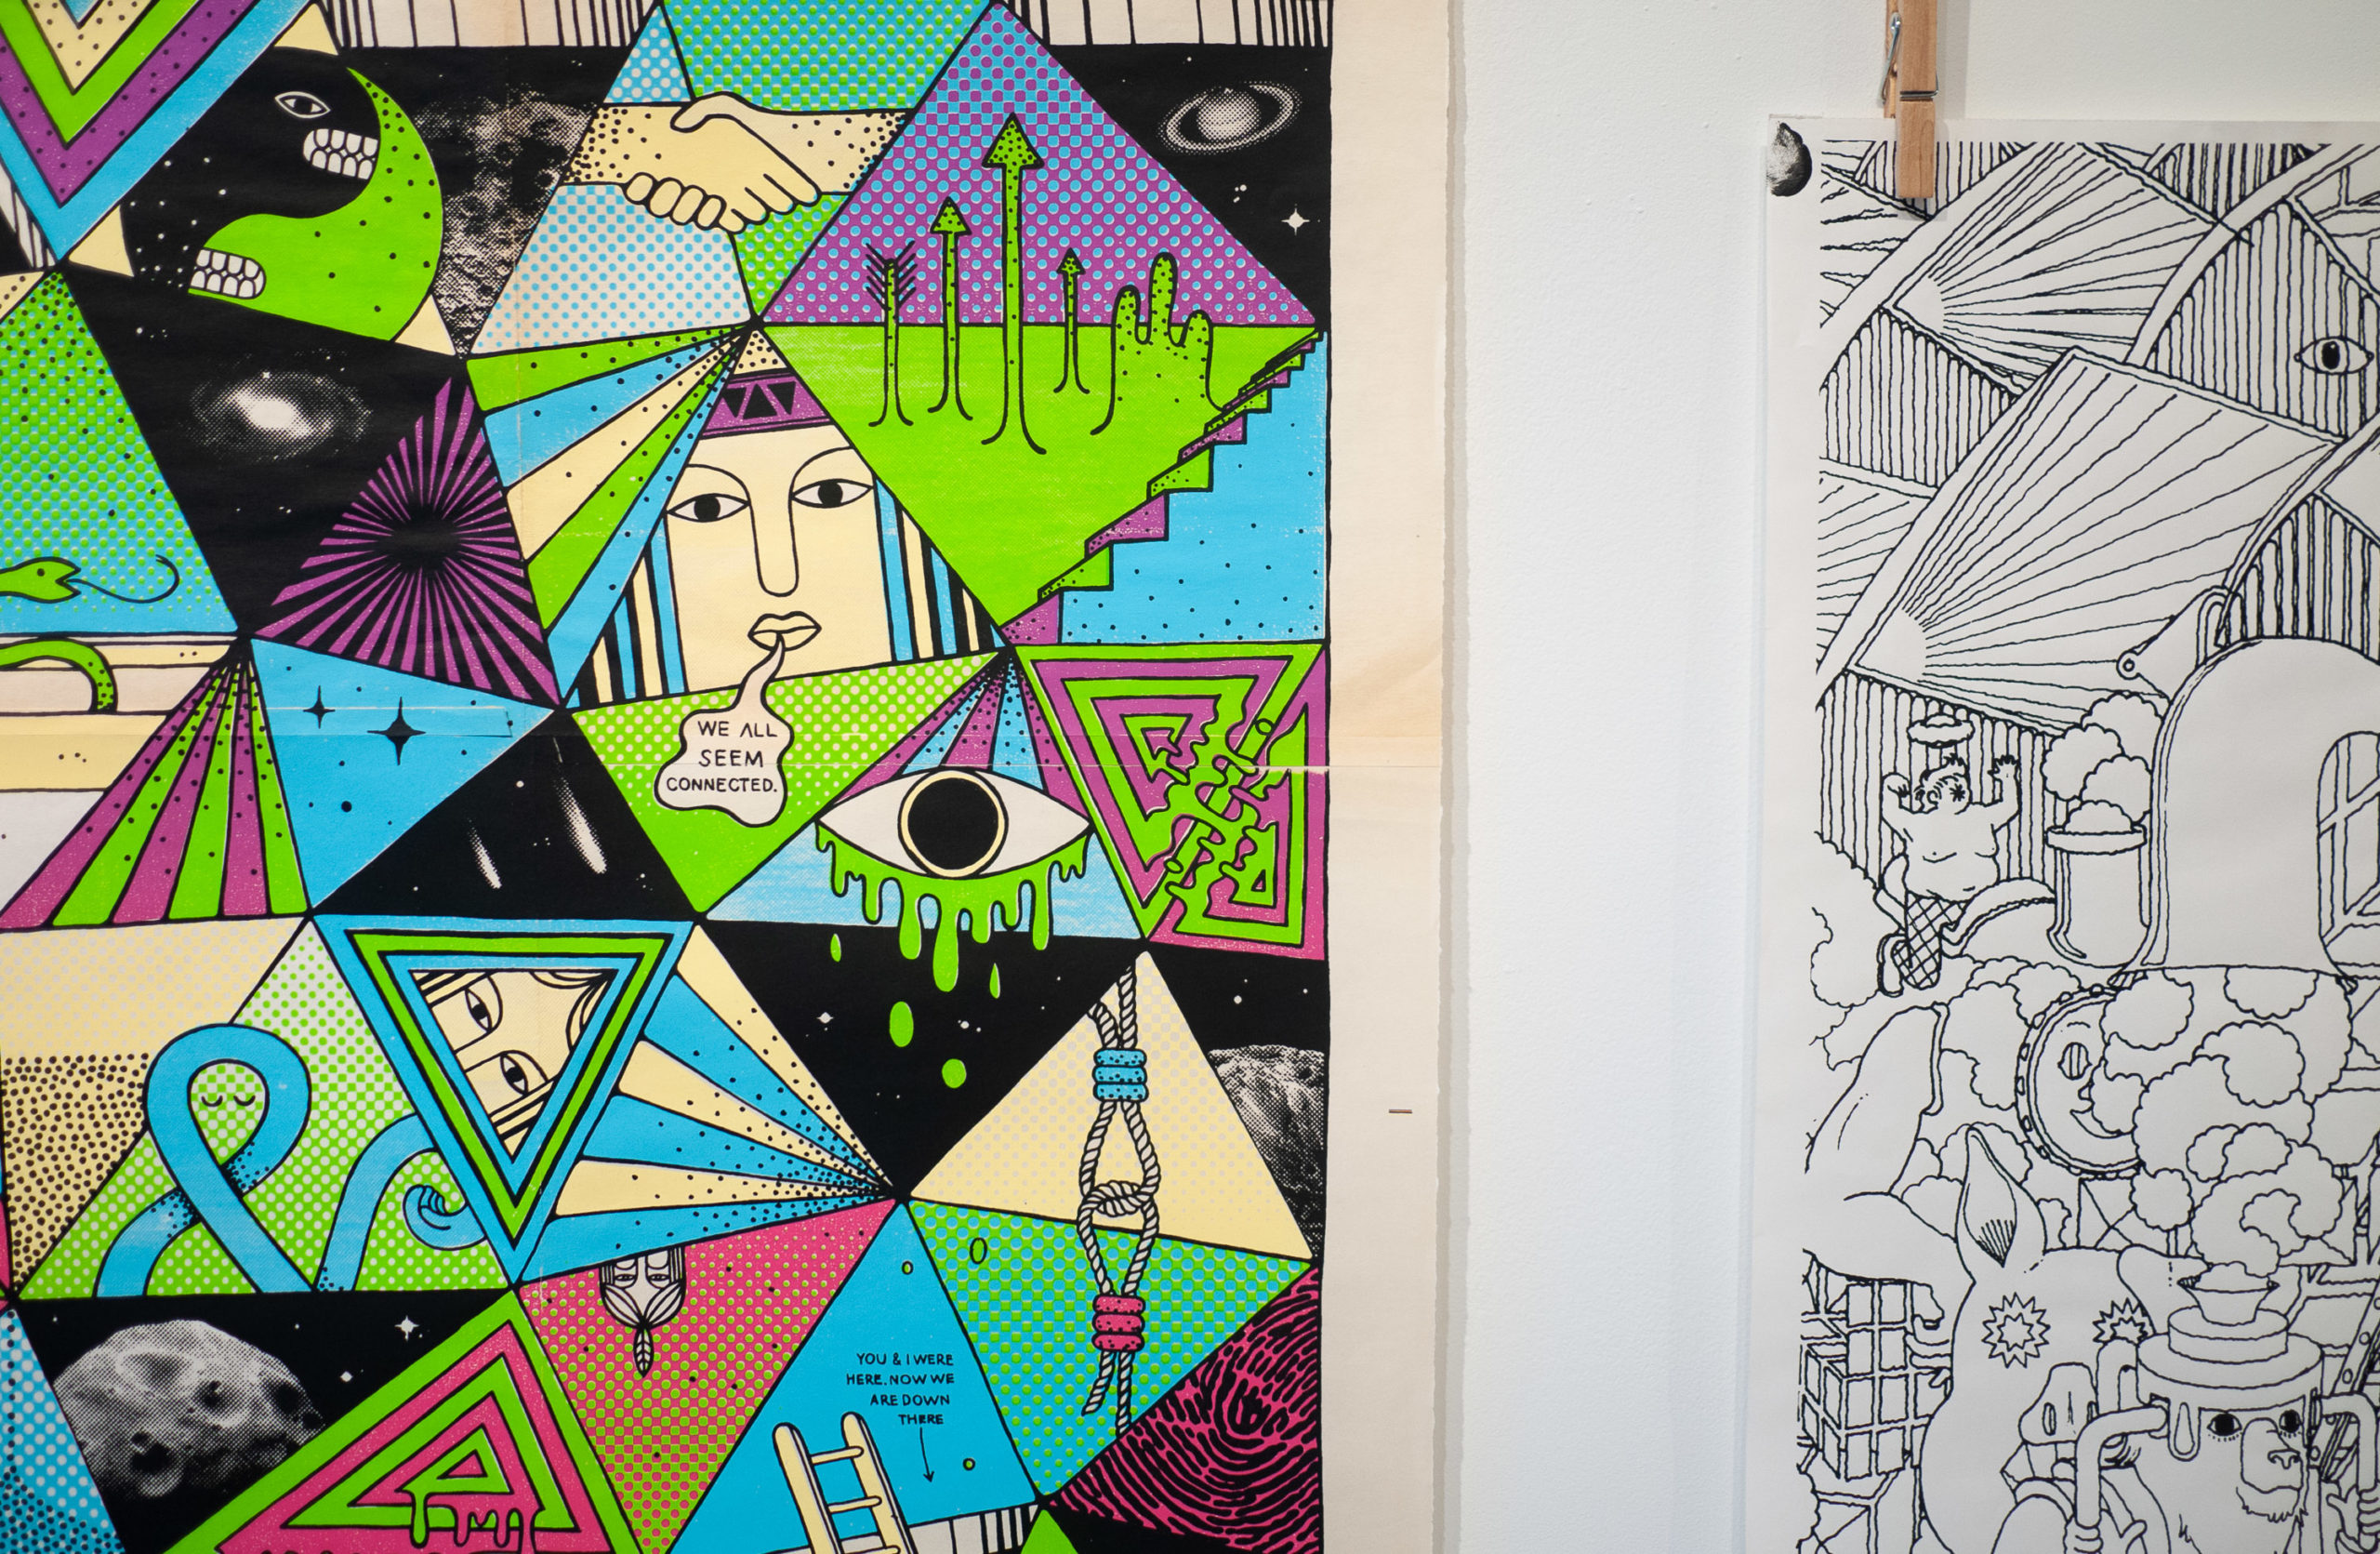 A poster made up of illustrated faces in triangles